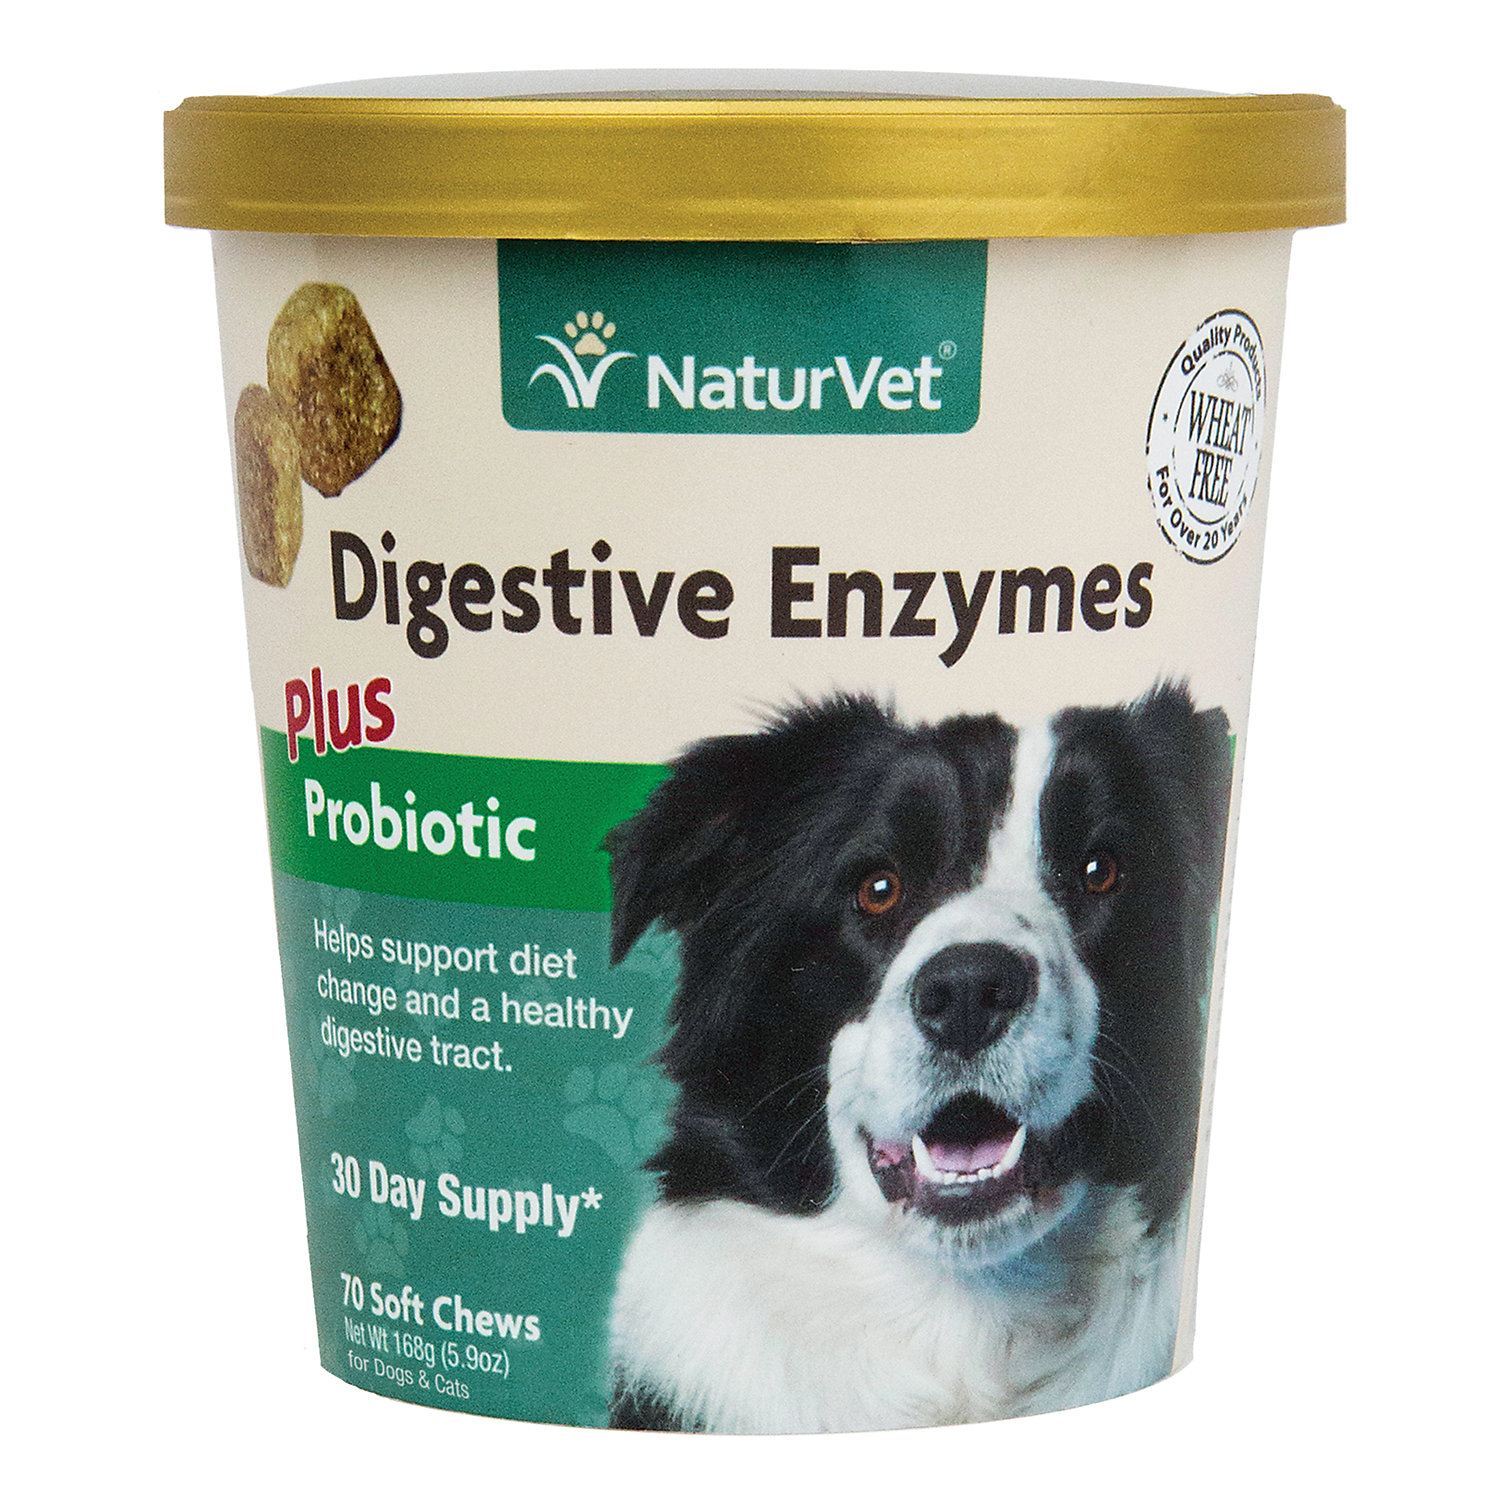 Naturvet Naturals Digestive Enzymes Dog Soft Chews Pack Of 70 Chews